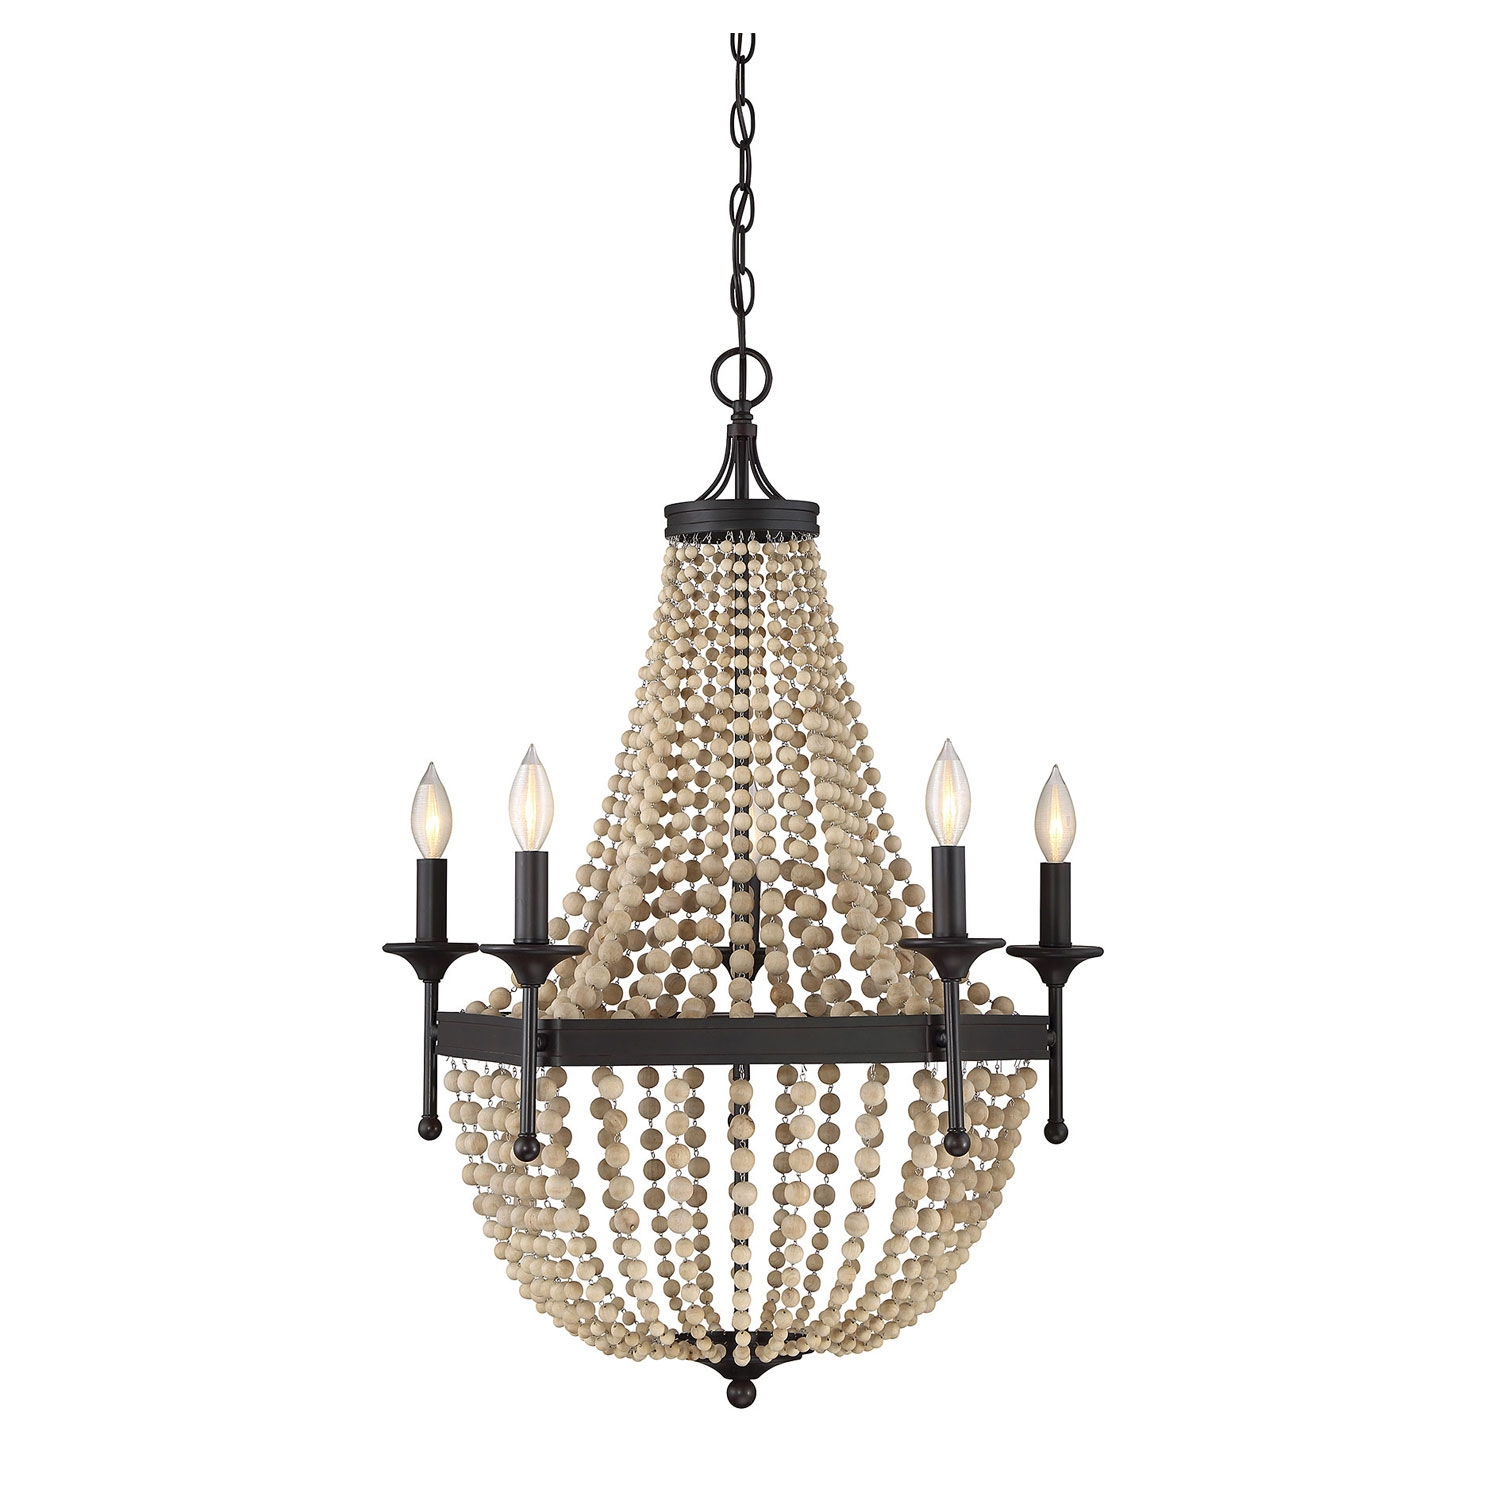 Bronze Oil Rubbed Chandeliers Bellacor Regarding Small Bronze Chandelier (View 15 of 15)